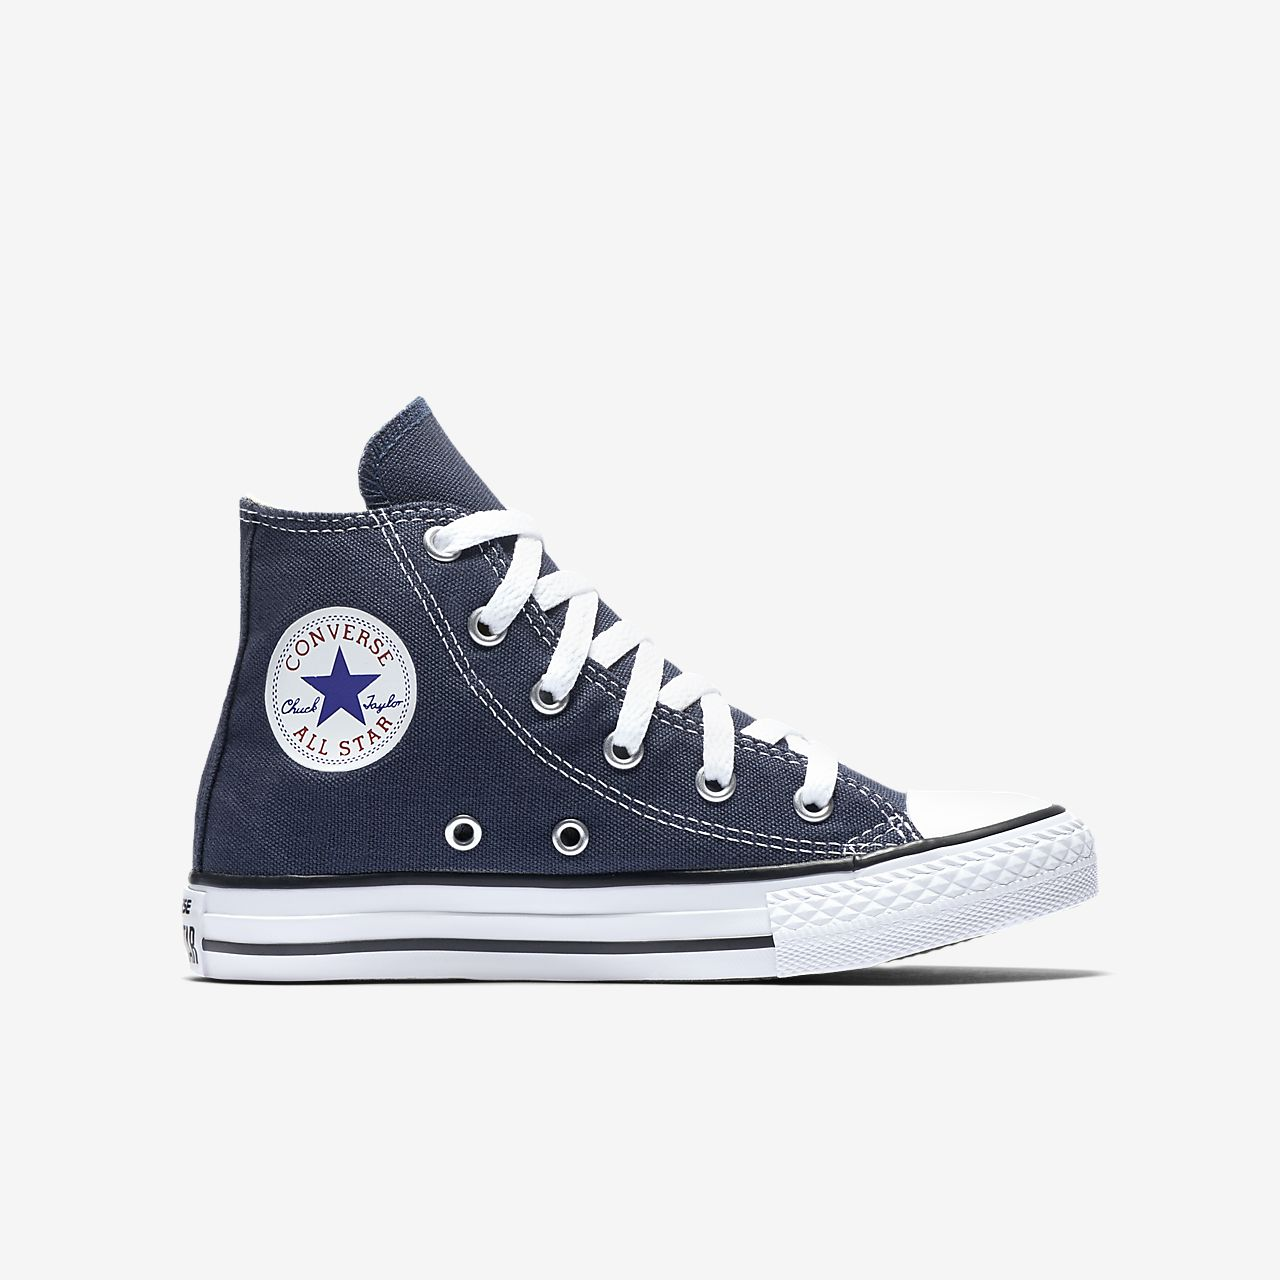 a94568554aa97e Converse Chuck Taylor All Star High Top (10.5c-3y) Little Kids  Shoe ...